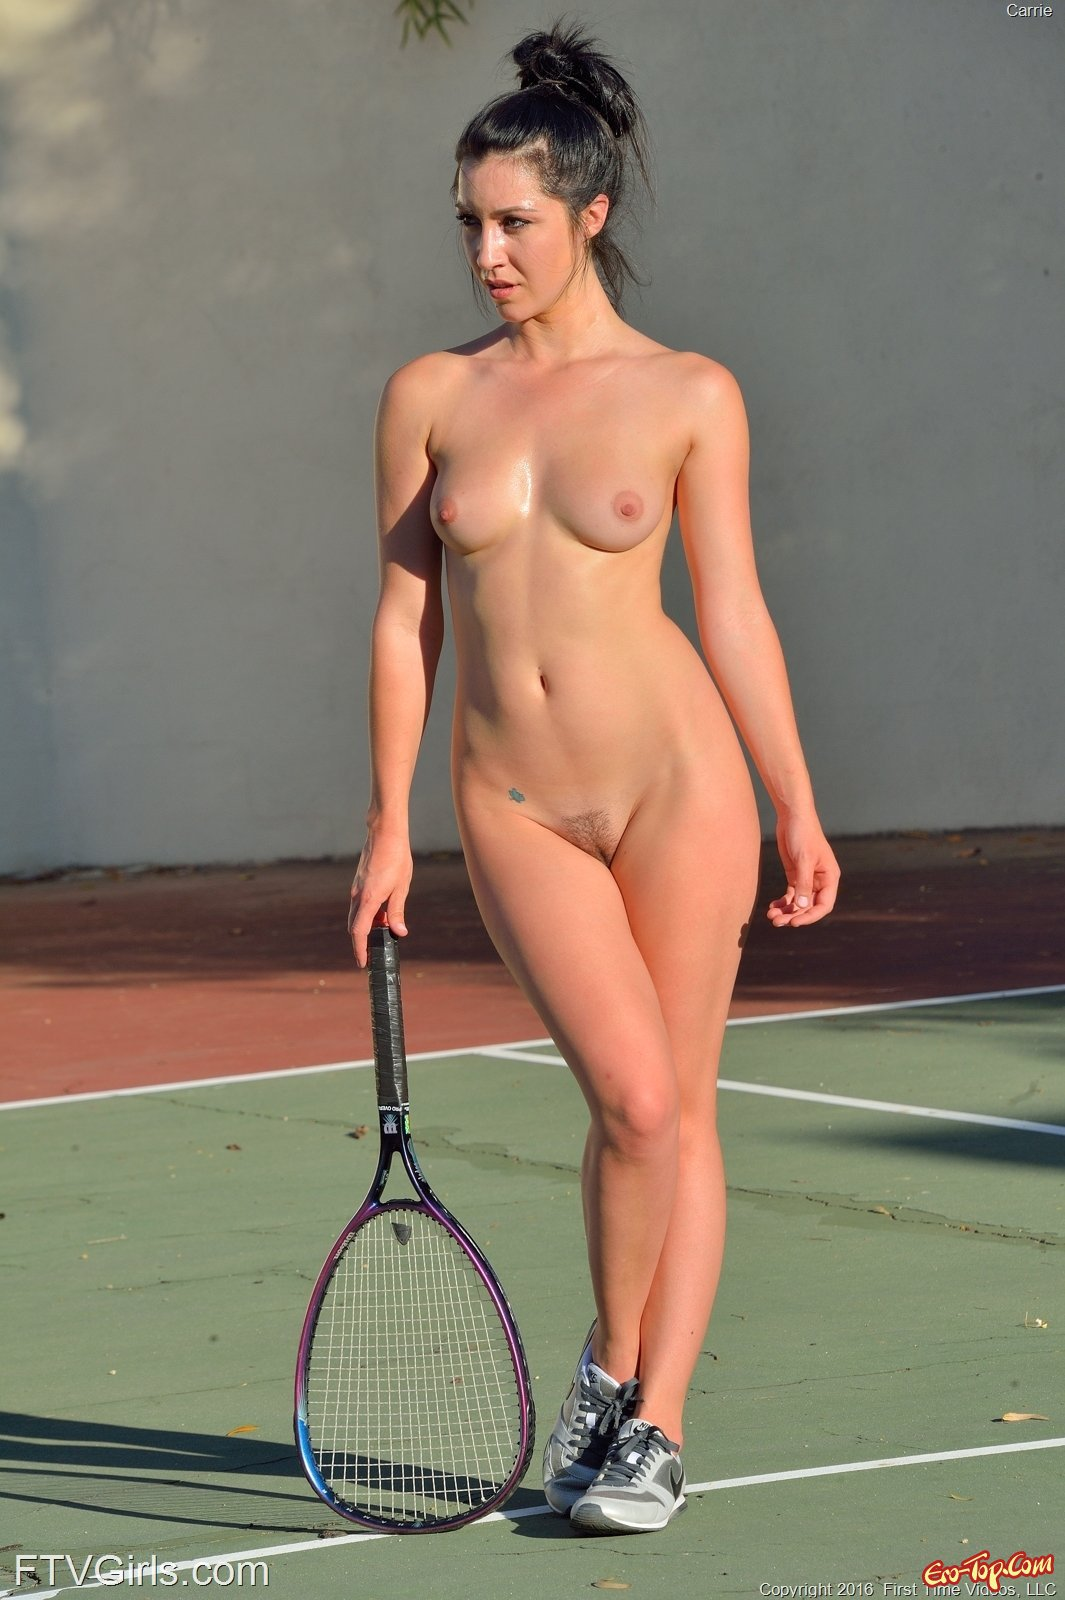 Nude tennis player women — pic 15